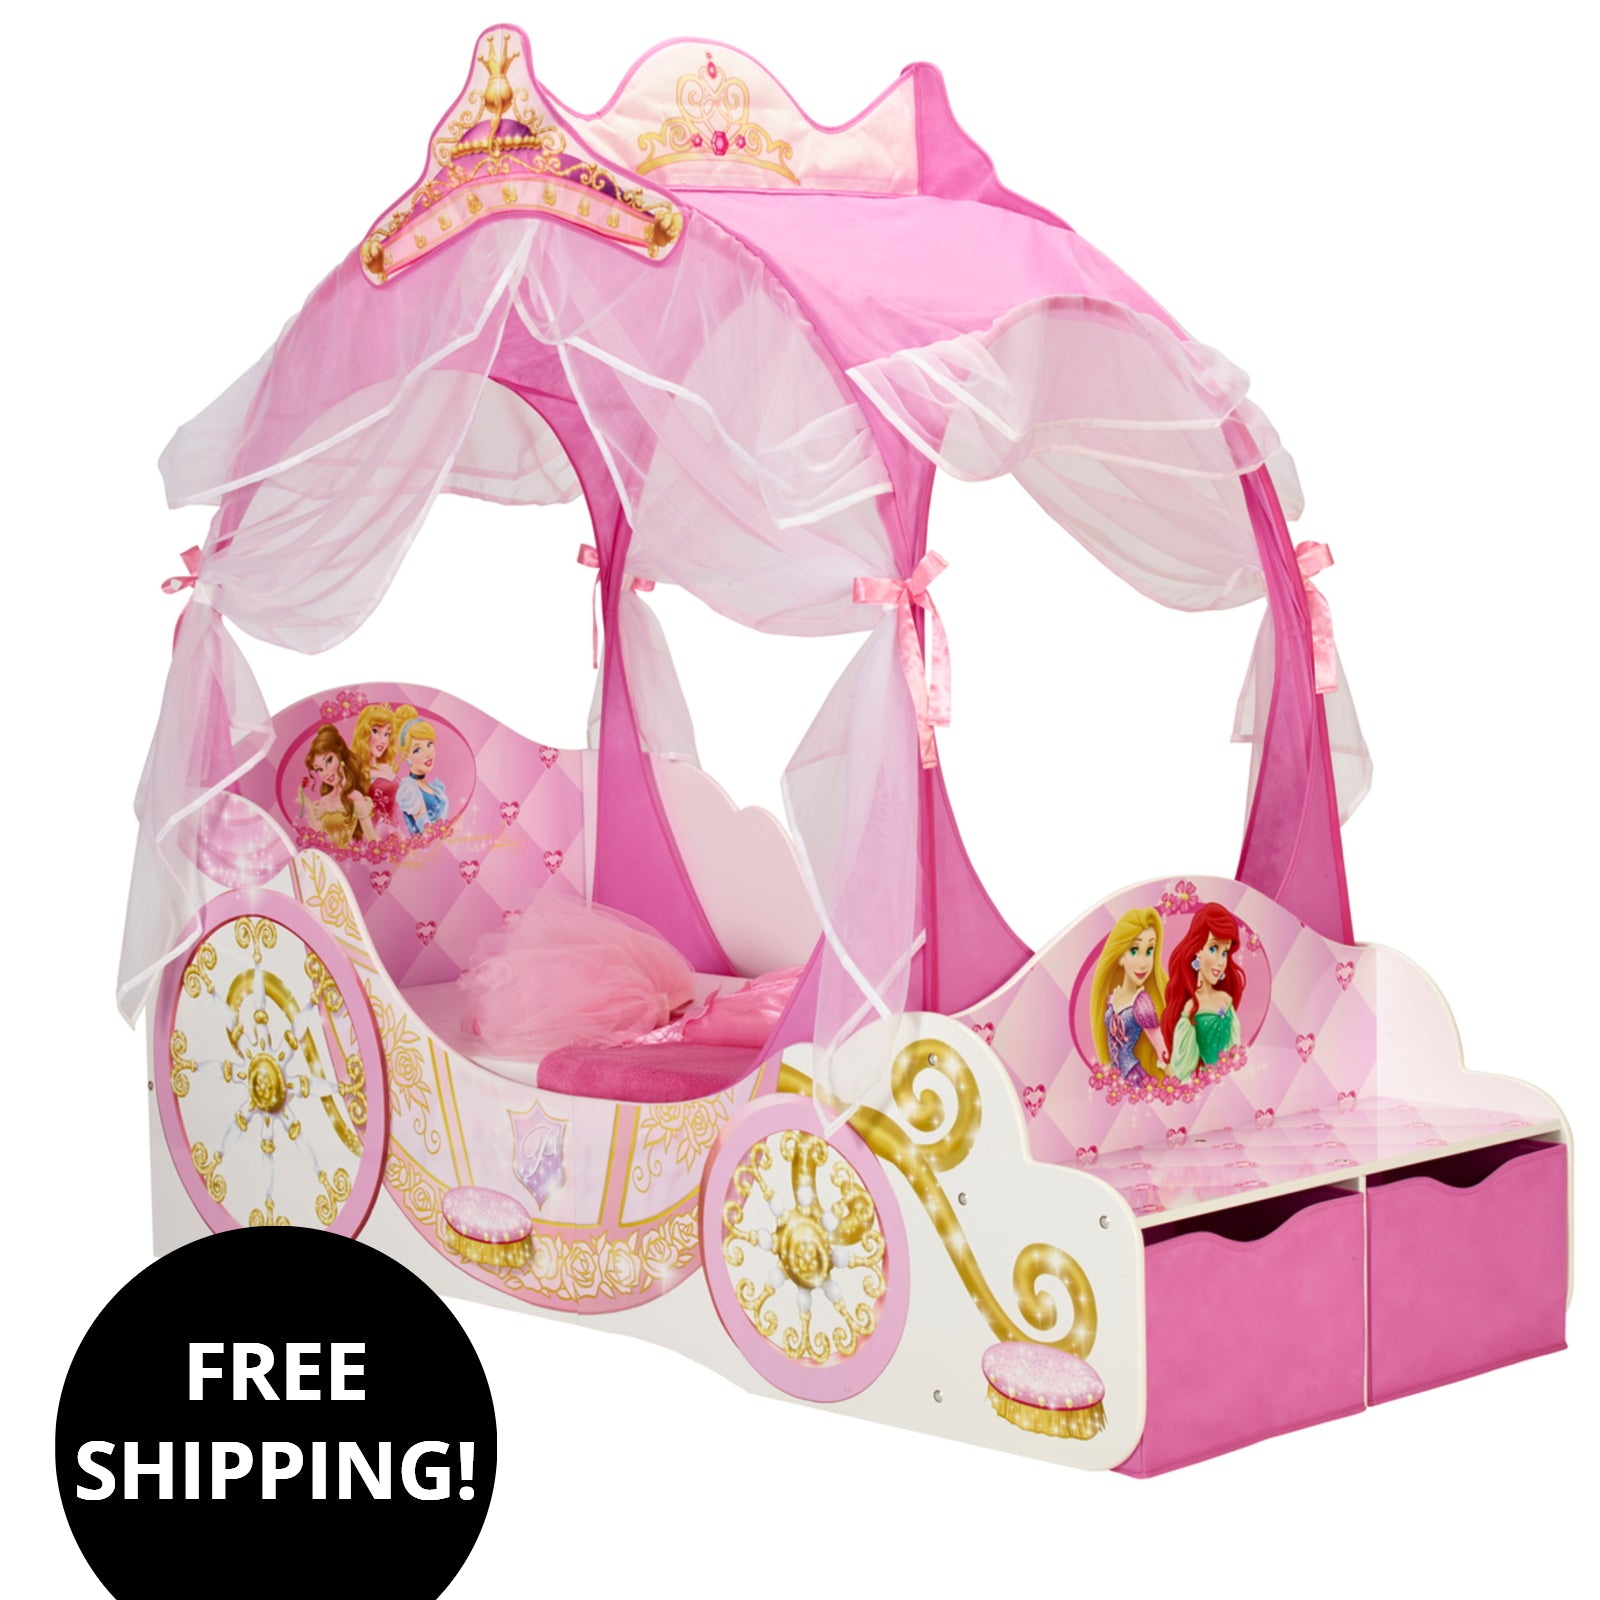 Disney Princess Carriage Toddler Bed With Canopy With Storage